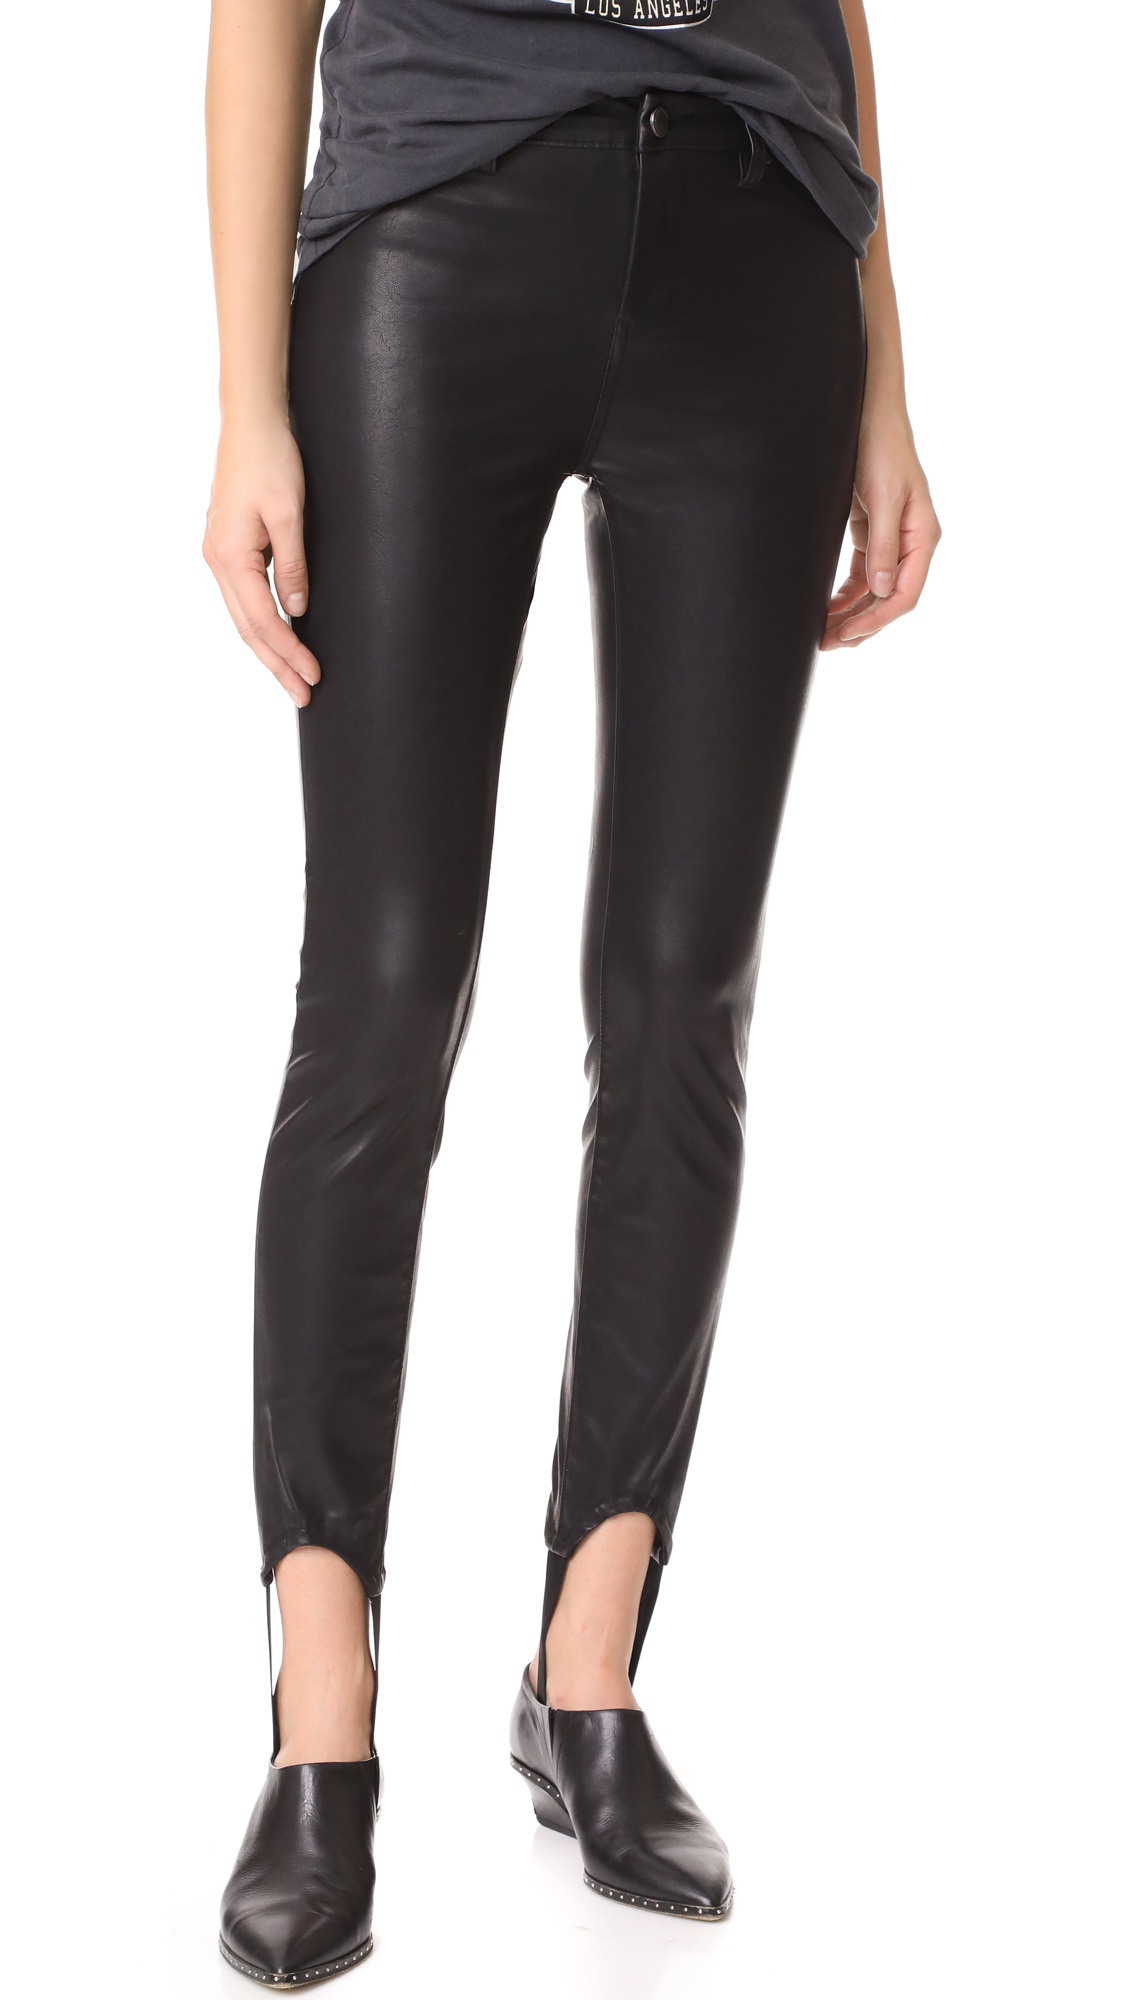 Blank Denim Faux Leather Stirrup Pants - Black